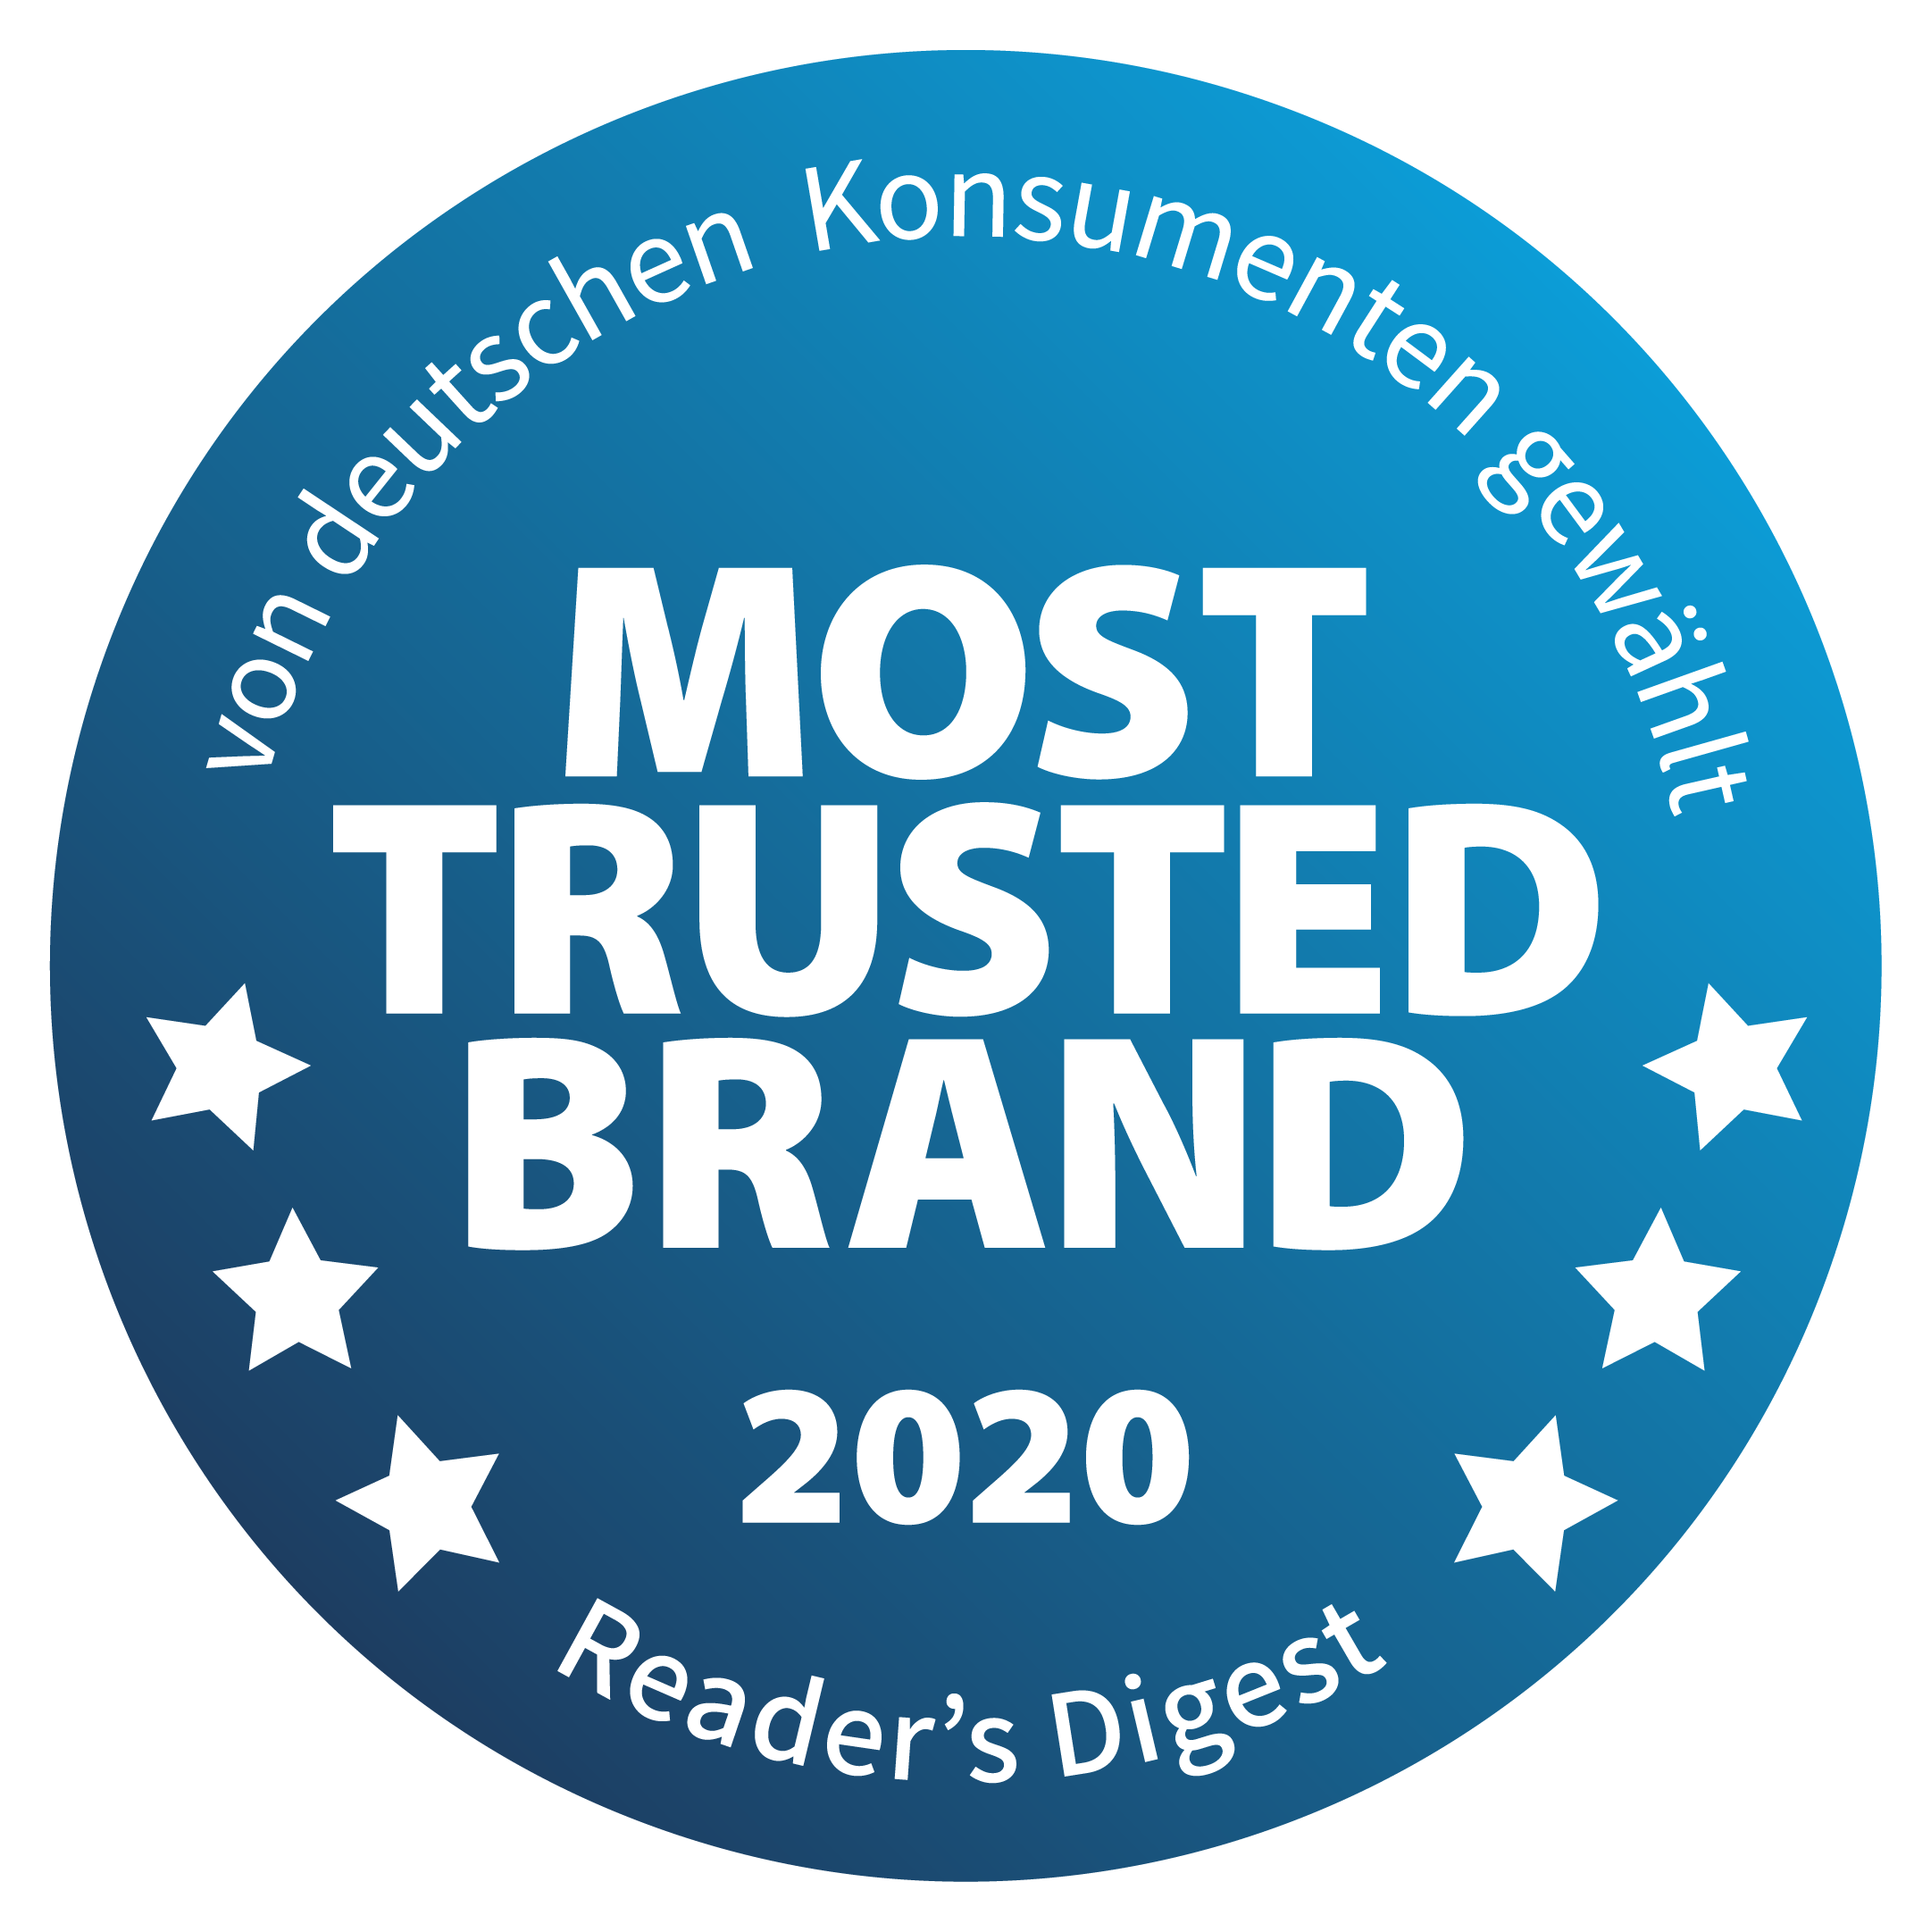 MOST TRUSTED BRANDS 2020